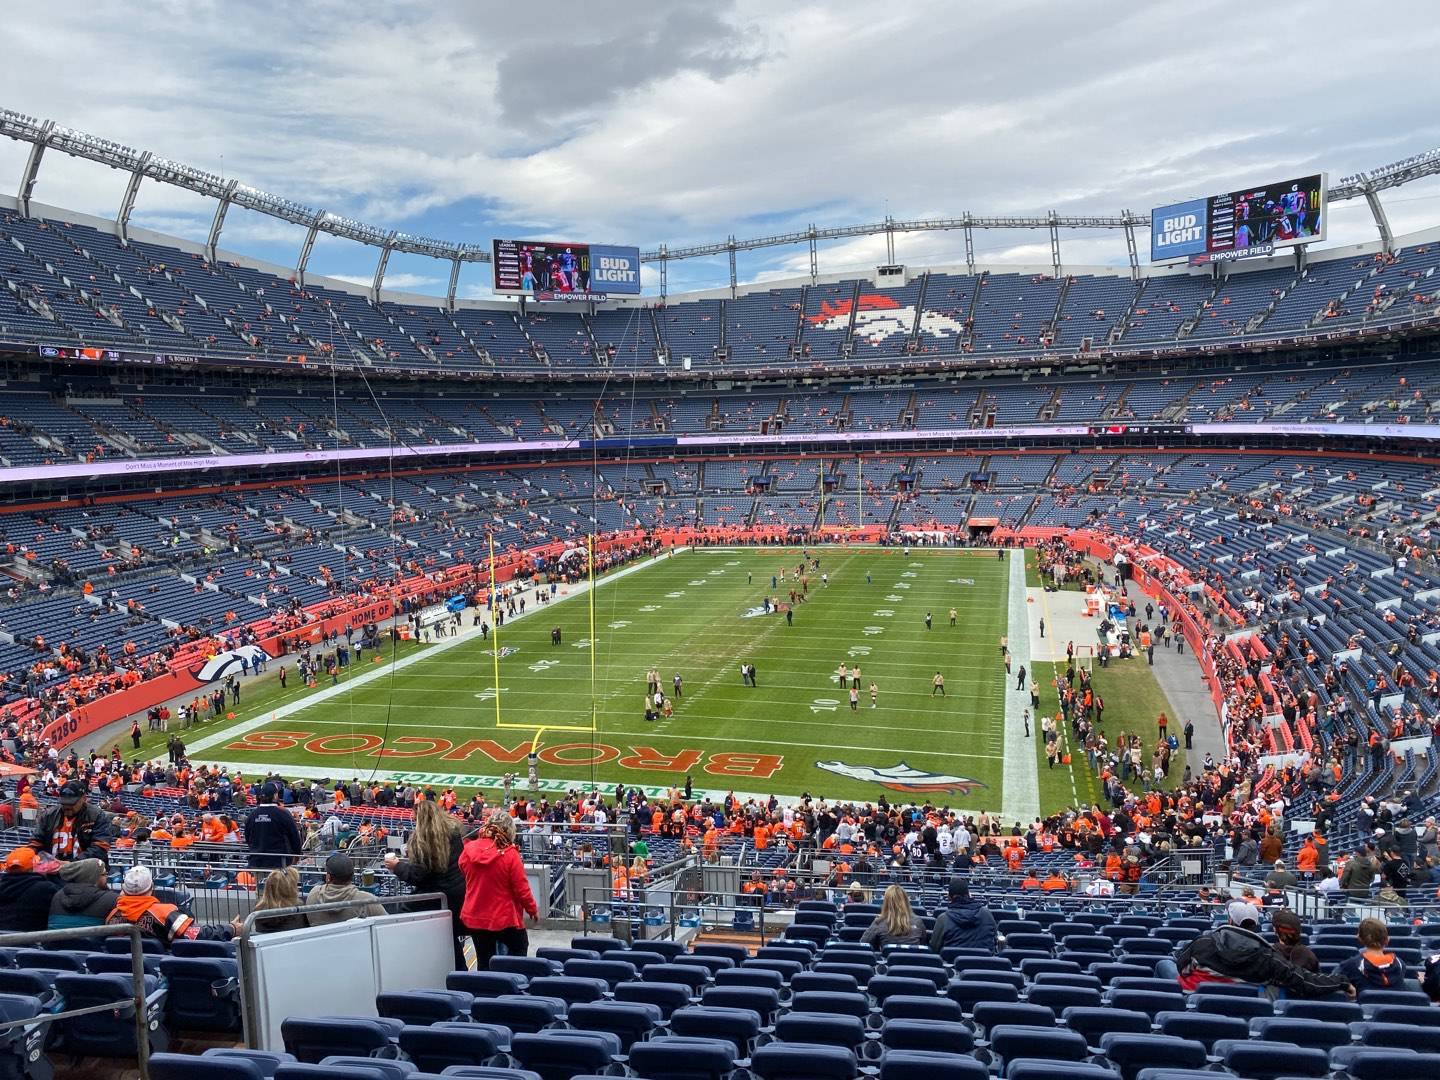 Empower Field at Mile High Stadium Section 230 Row 16 Seat 23